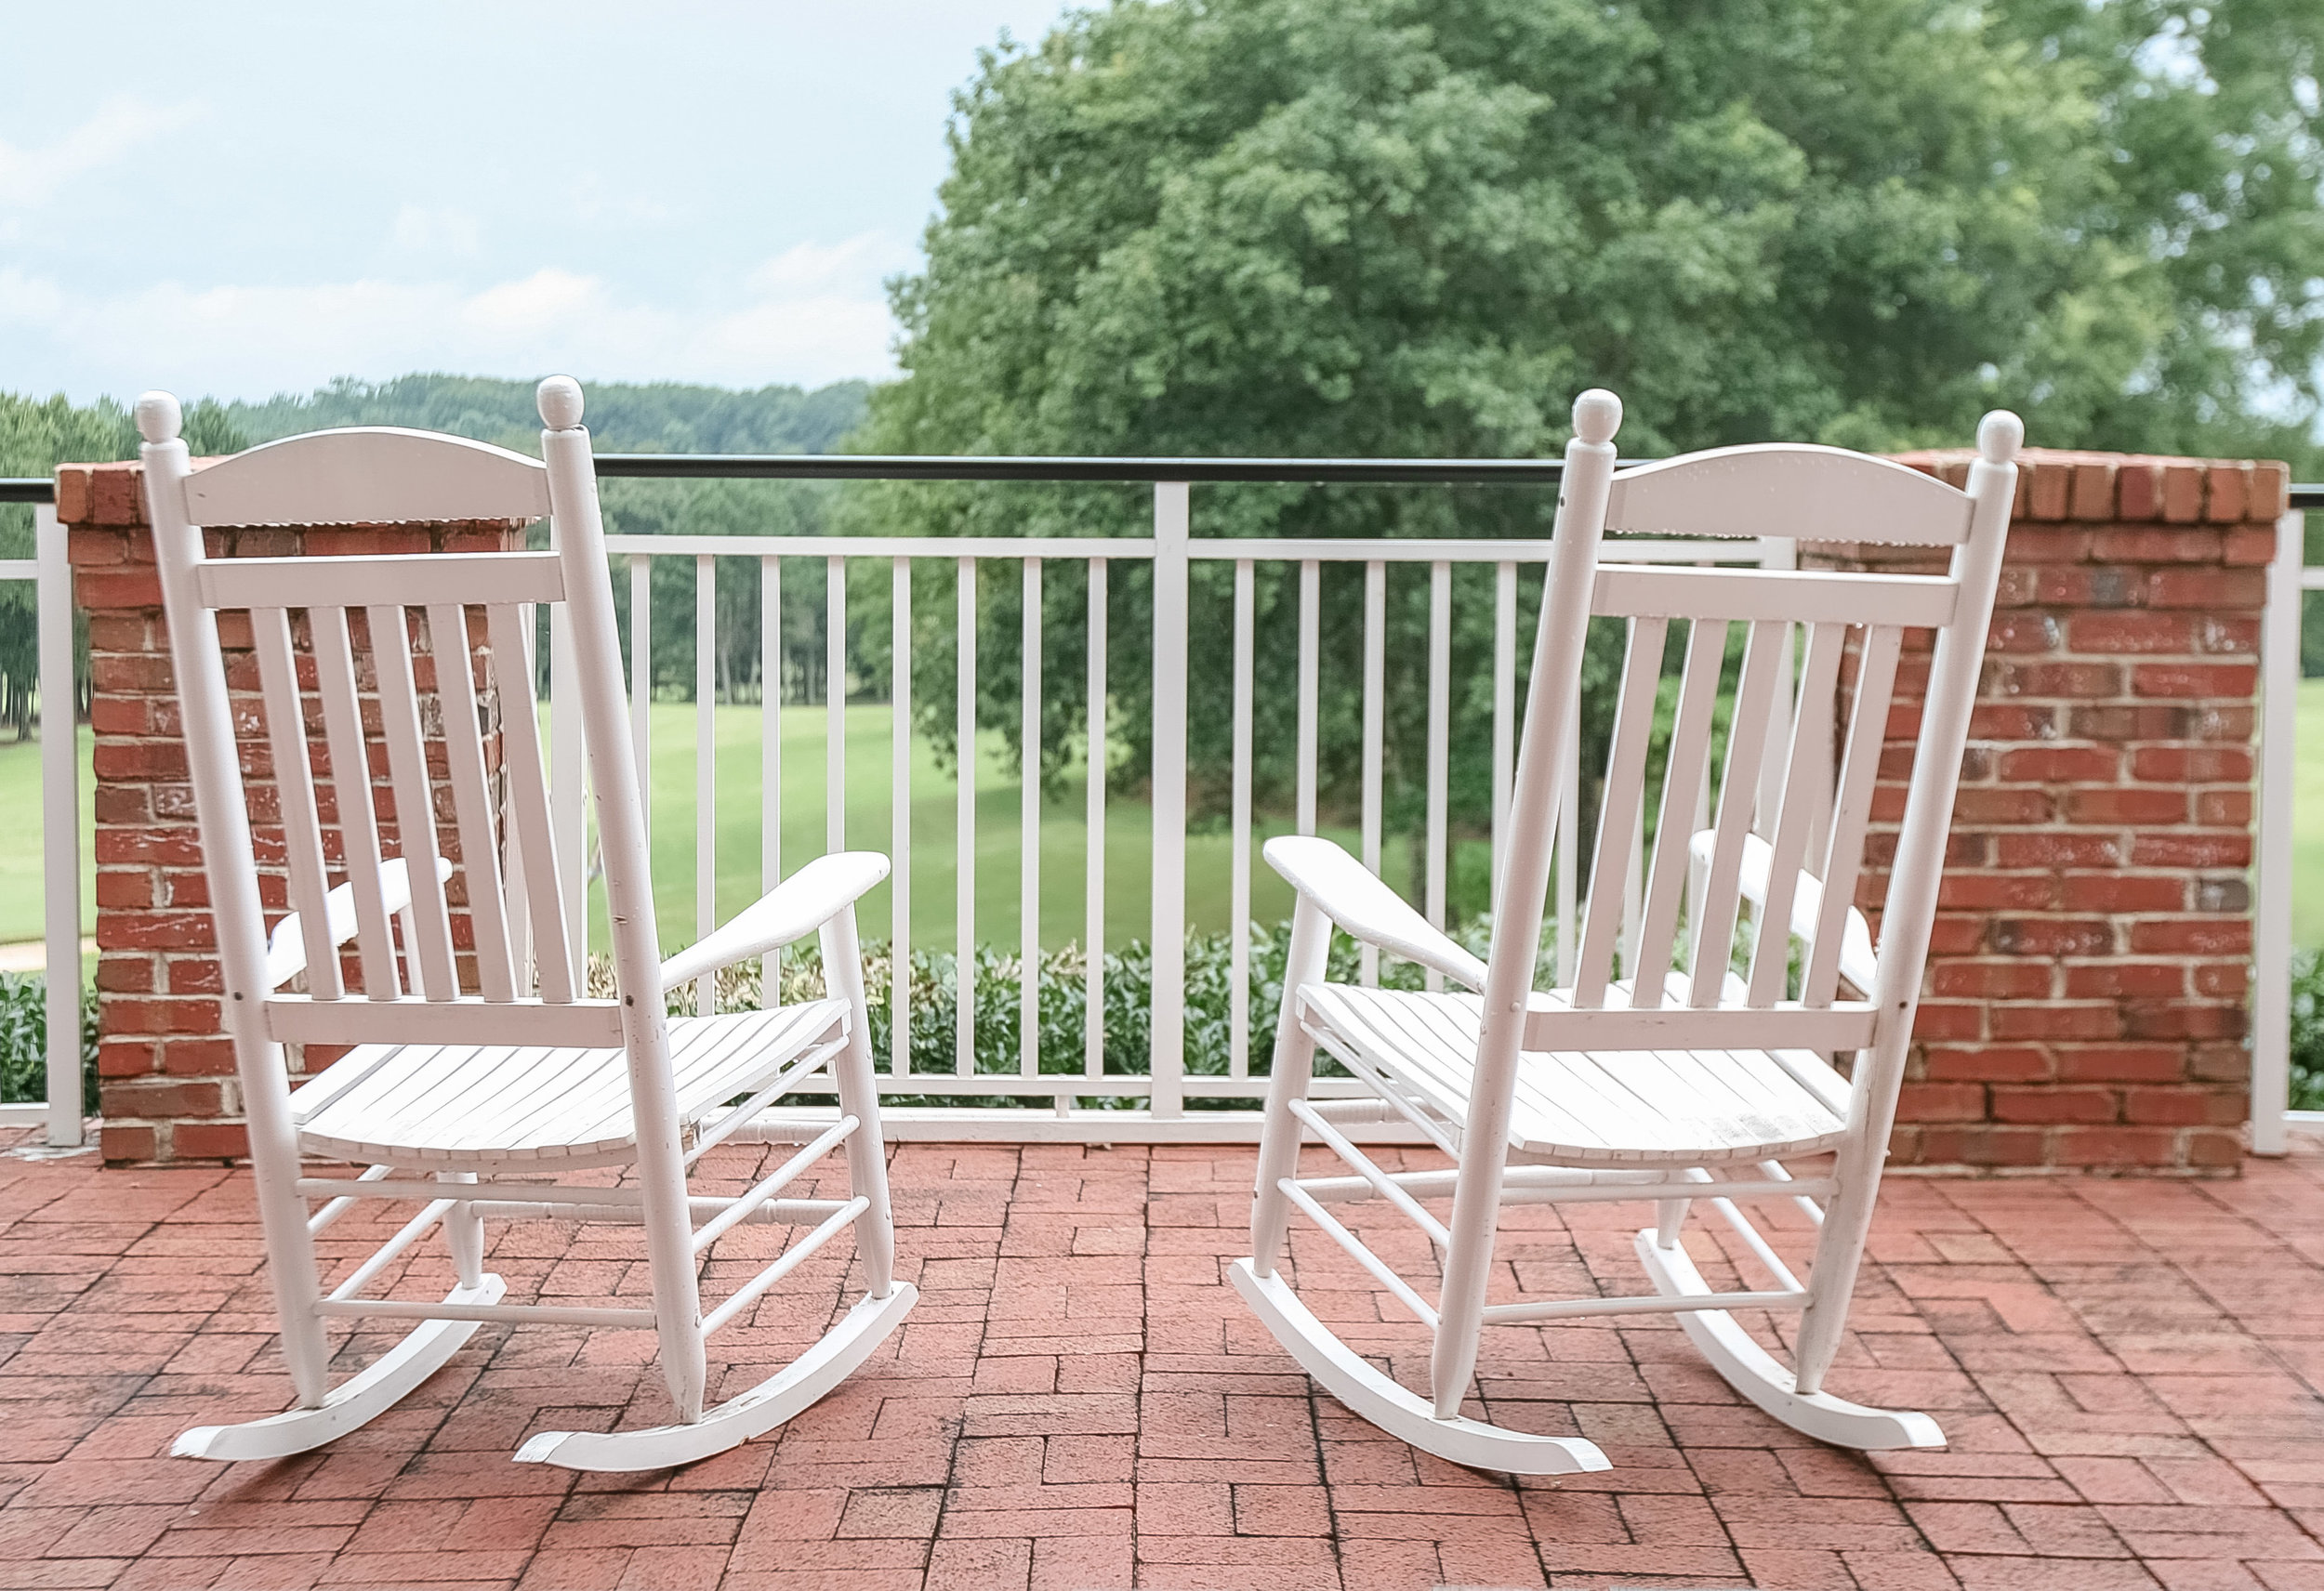 TGC_Two Rocking Chairs on a Porch_IMG_6347.jpg